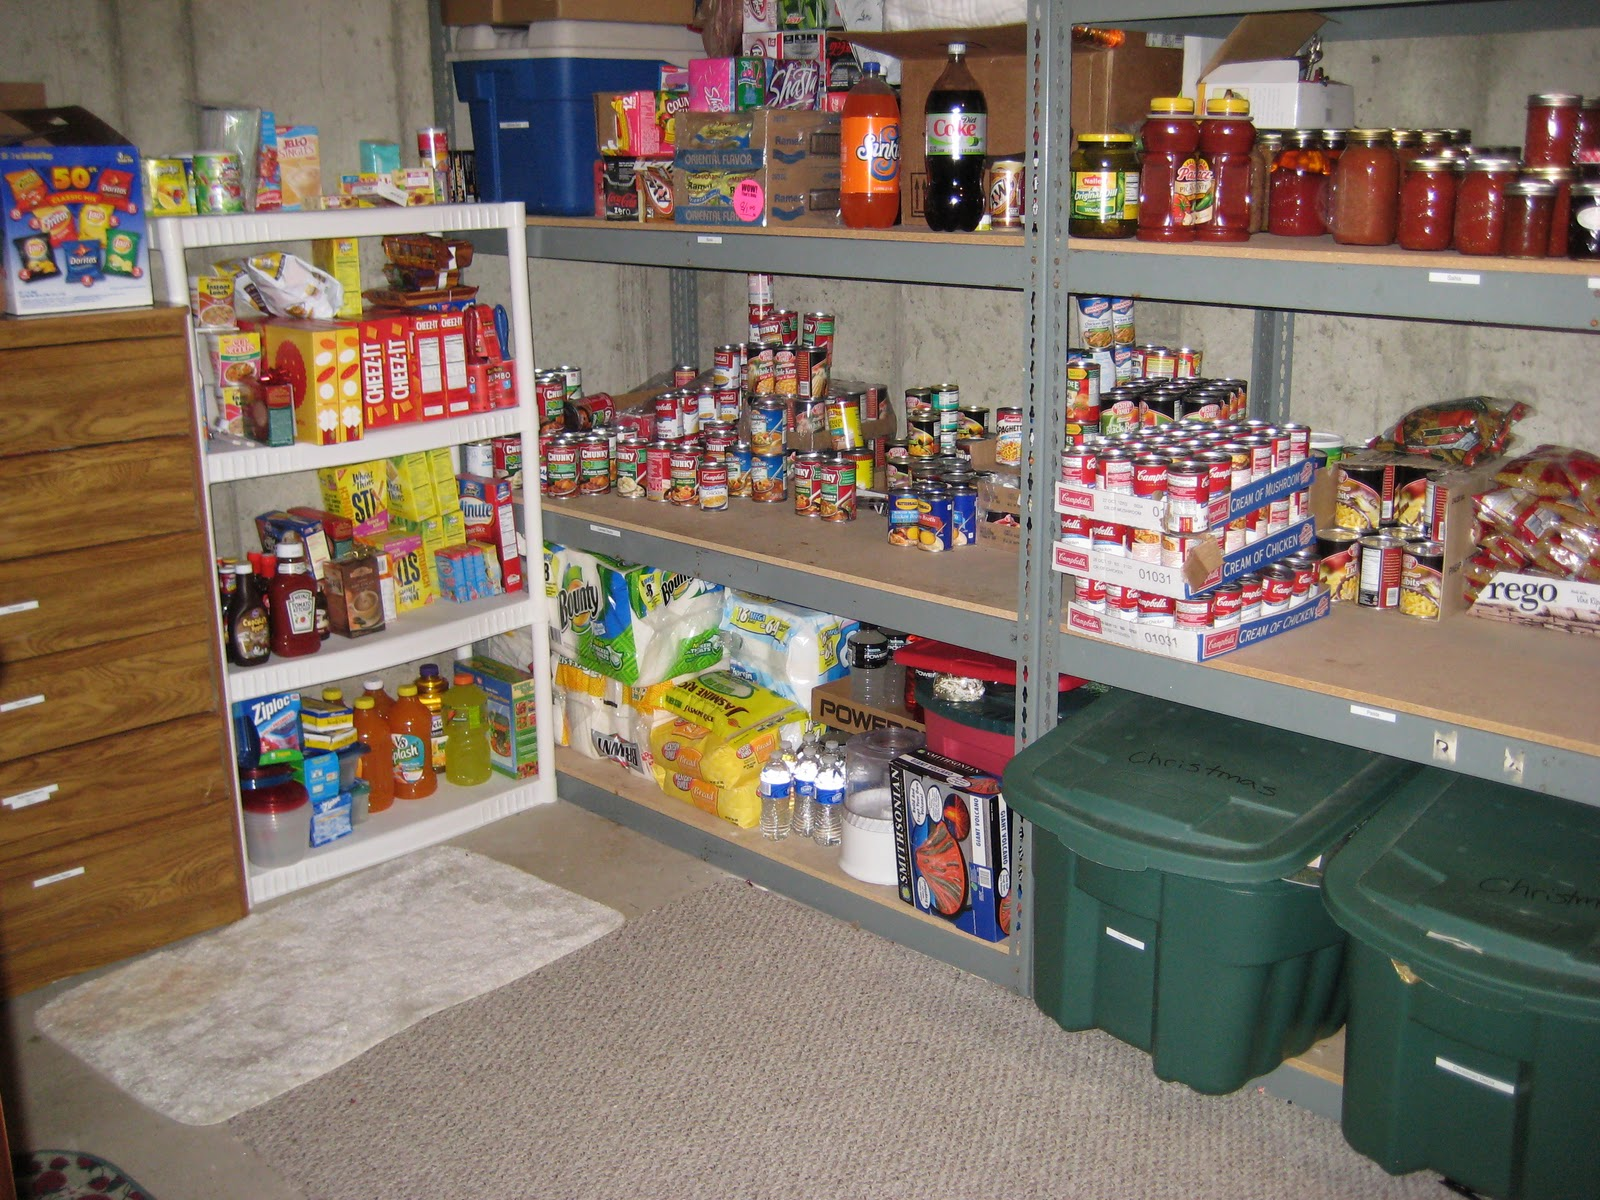 Spring Cleaning With Thrifty 101...........The Food Storage Room